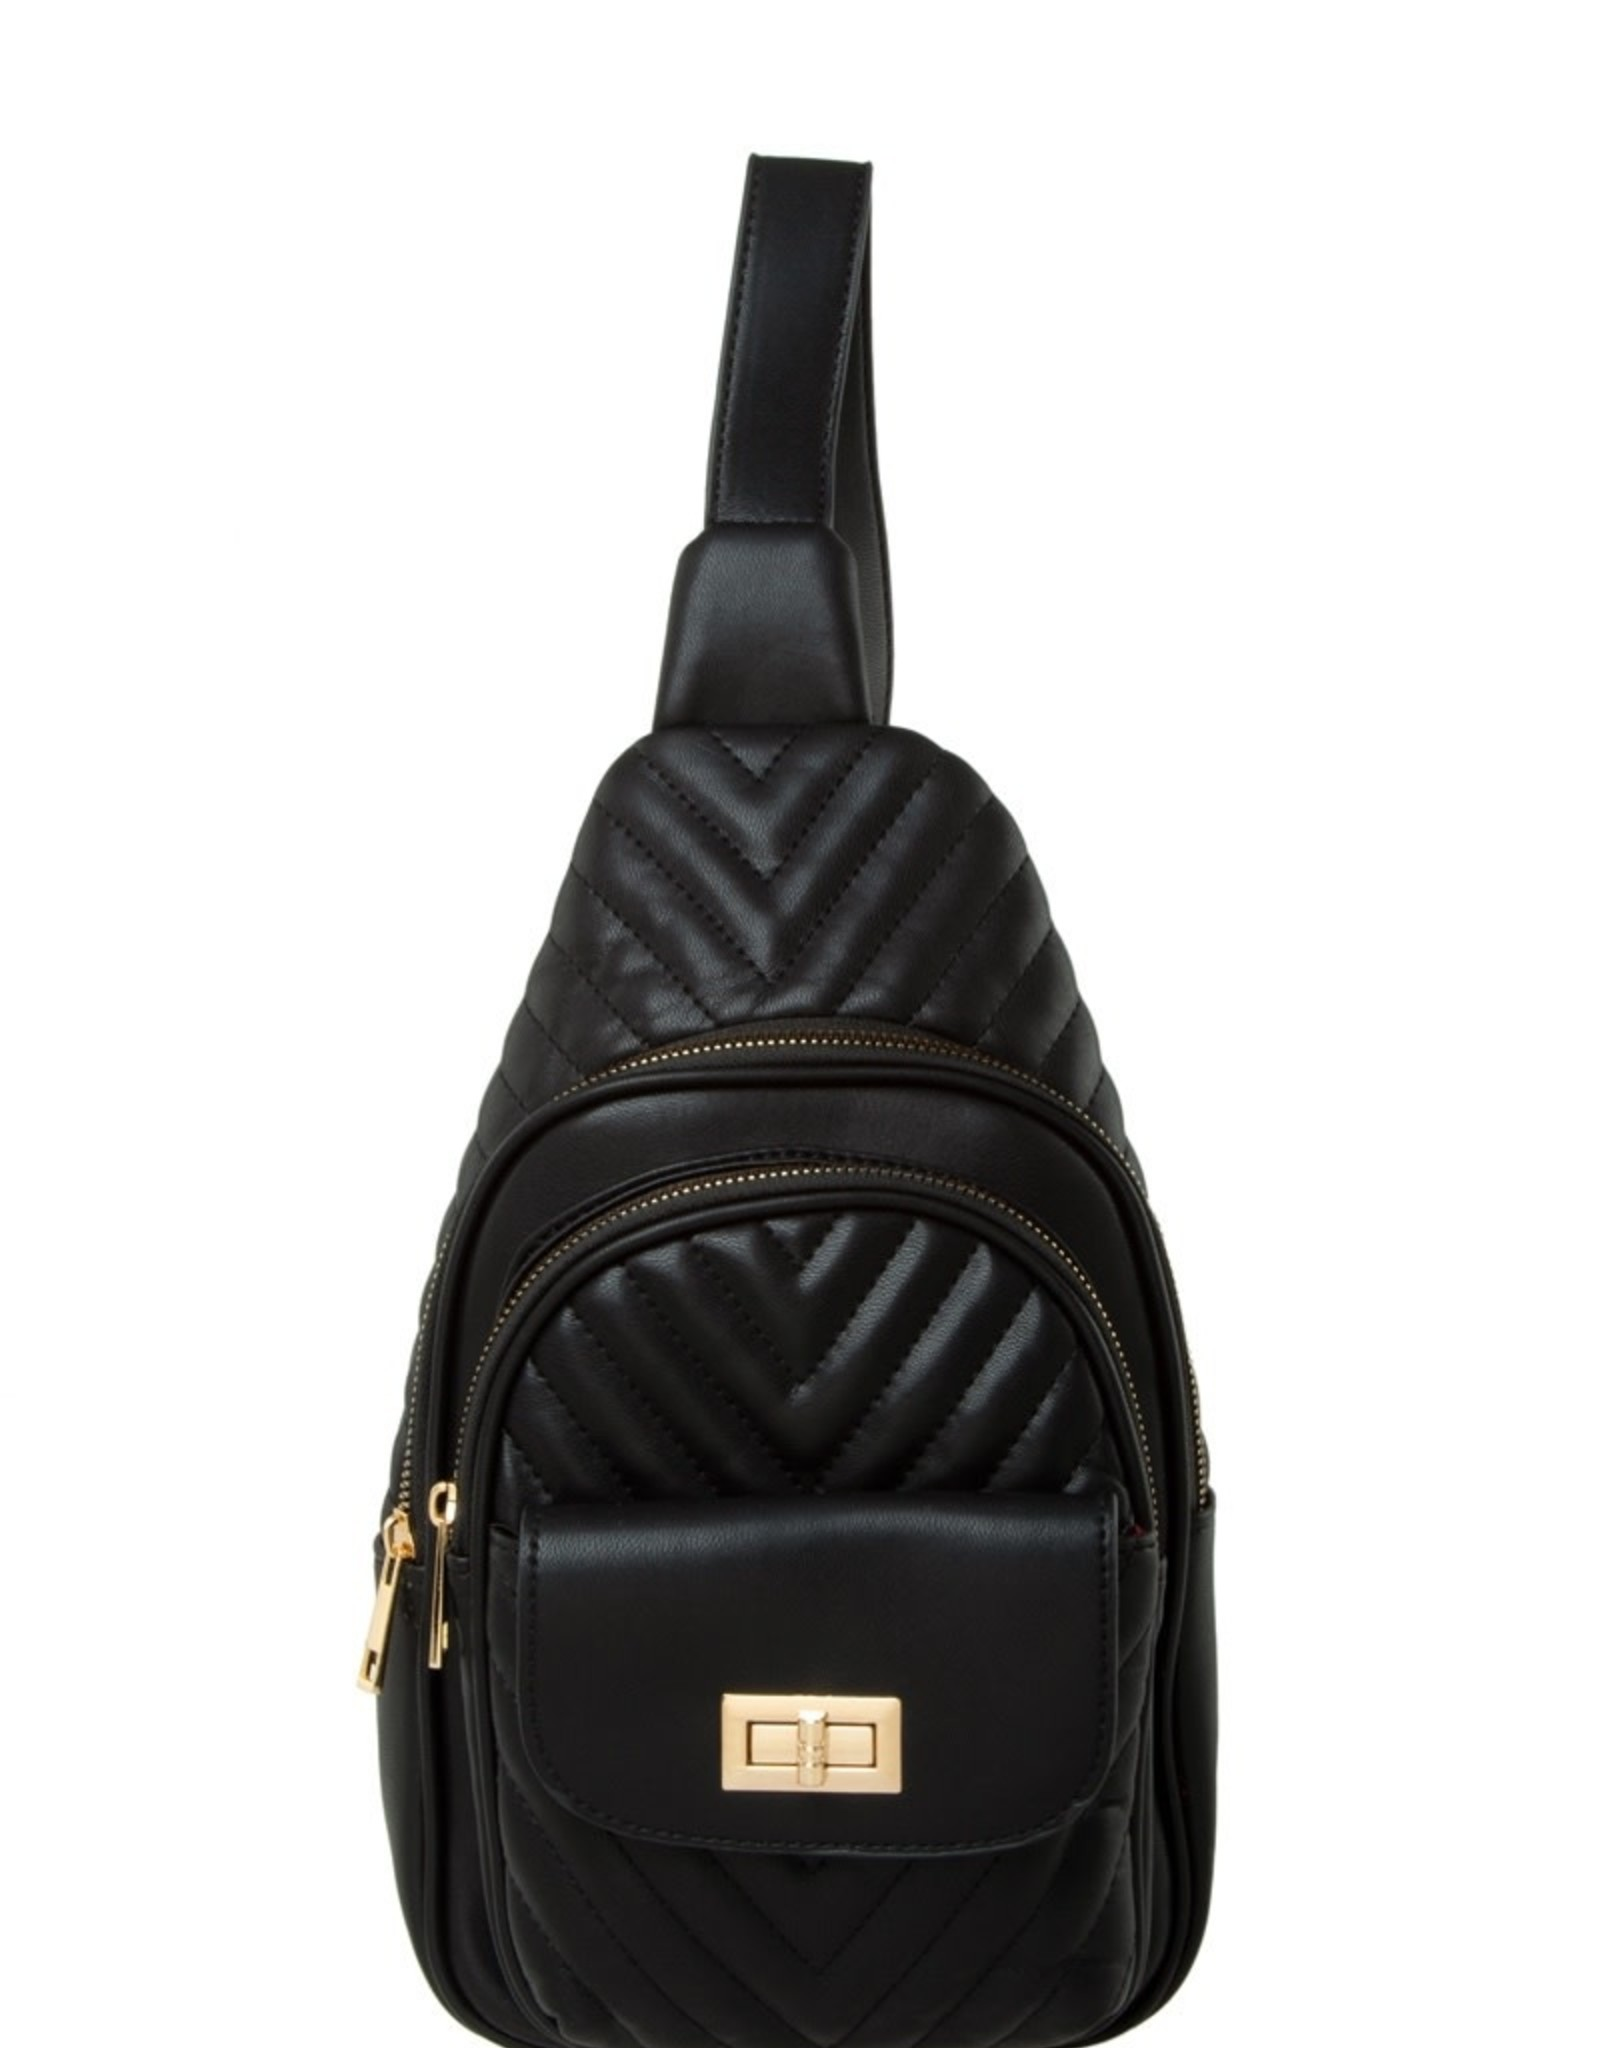 BACKPACK-CHEVRON QUILTED